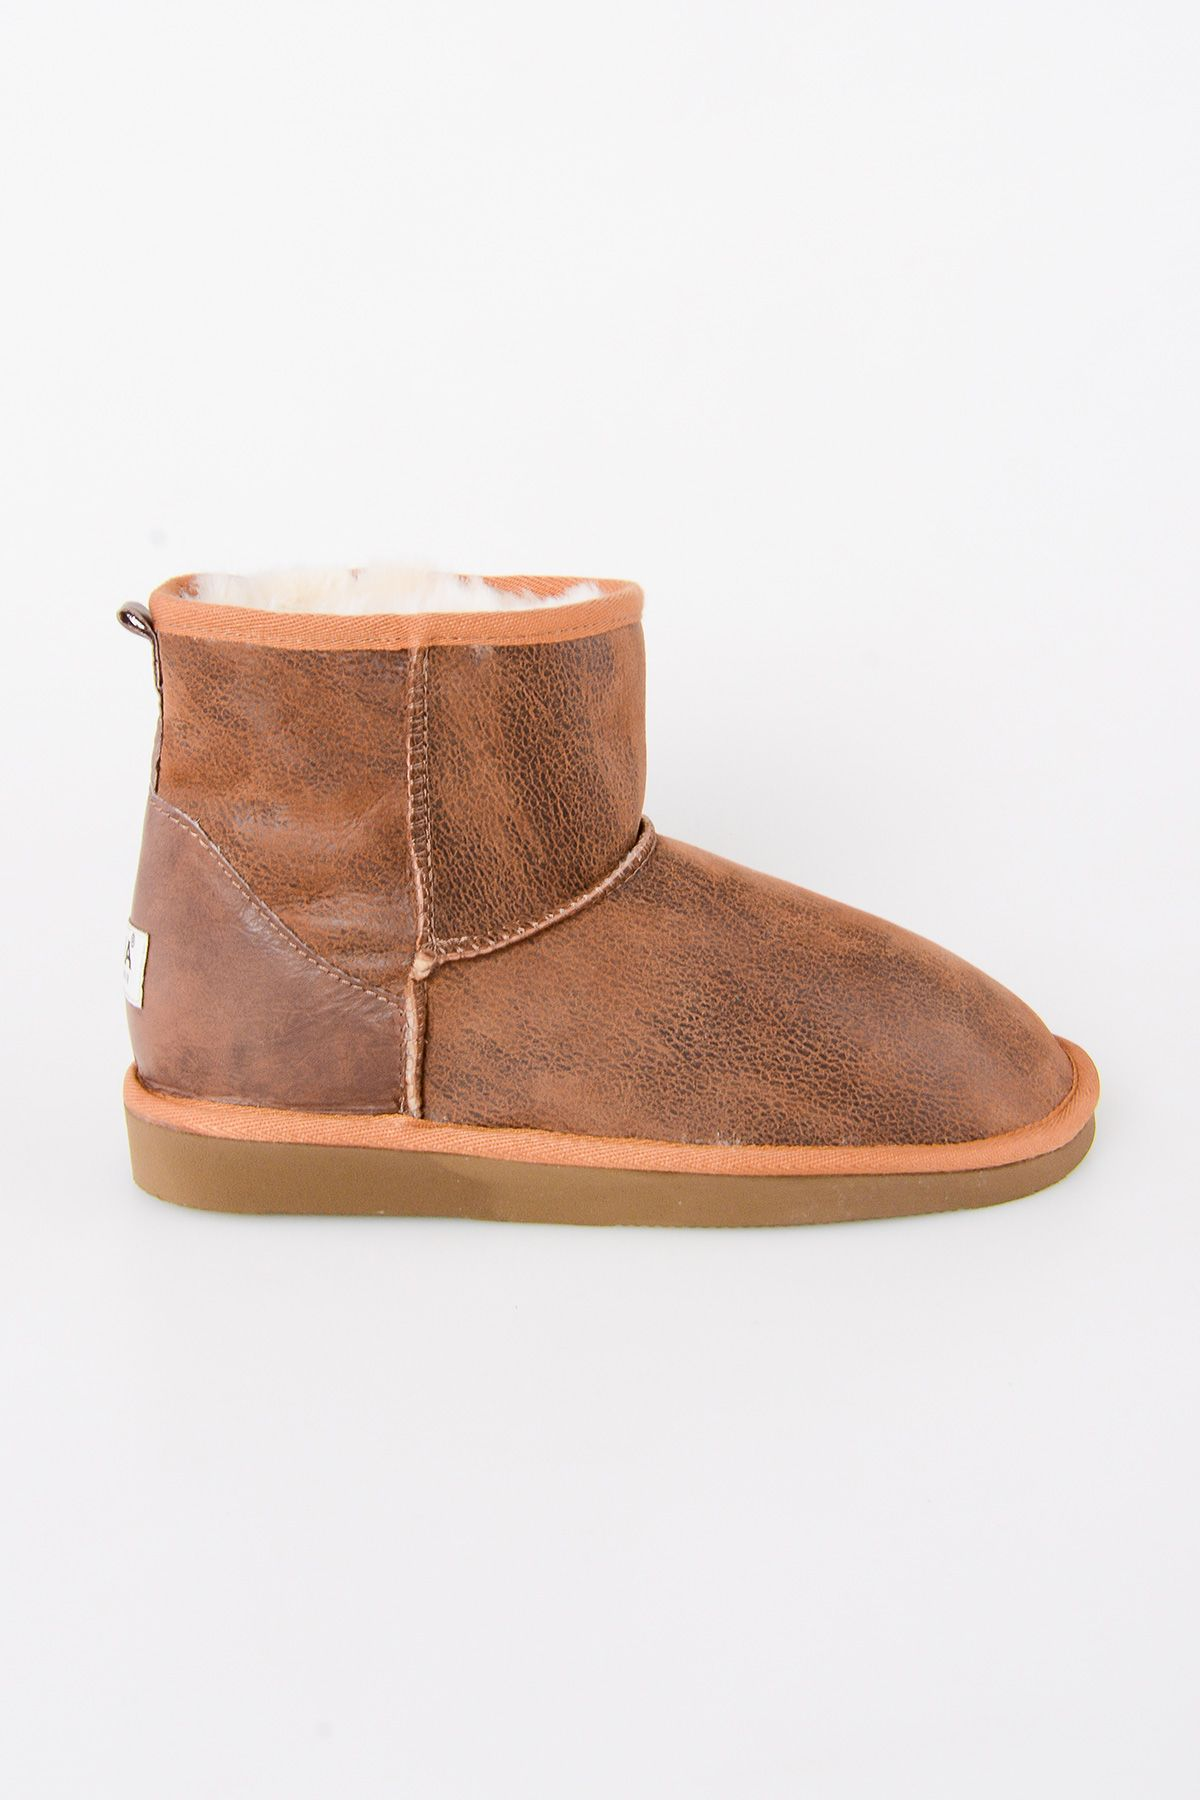 Pegia Genuine Leather & Shearling Short Women's Boots 980405 Ginger